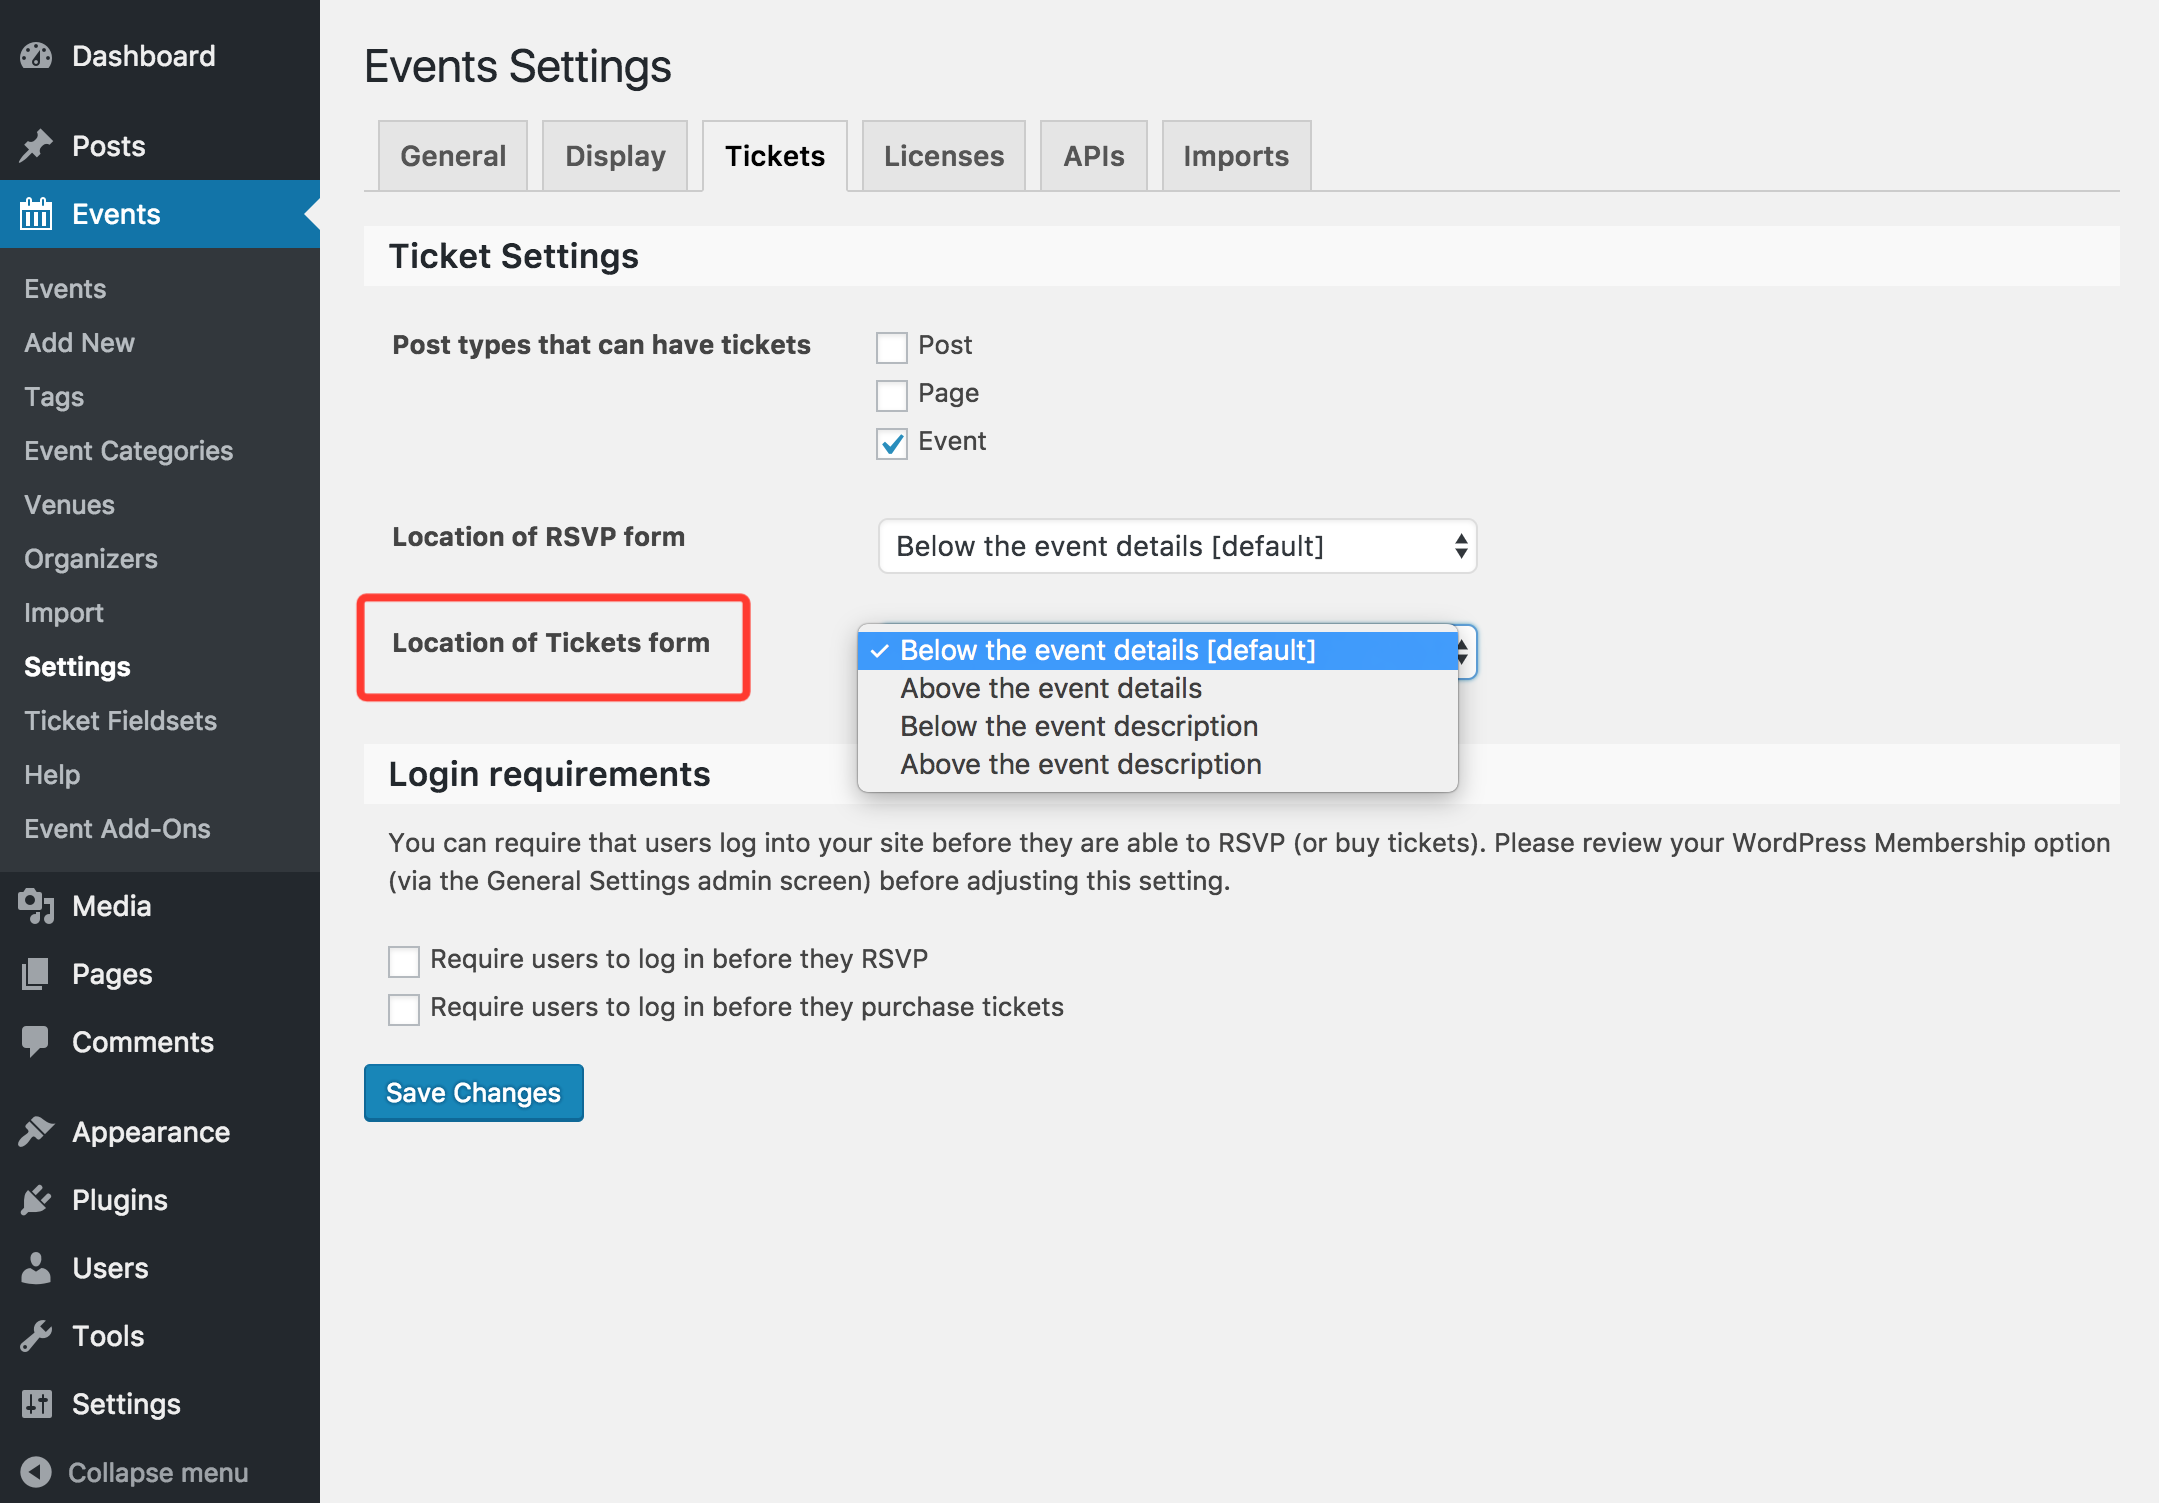 Event Tickets Plus - Location of Tickets Form setting